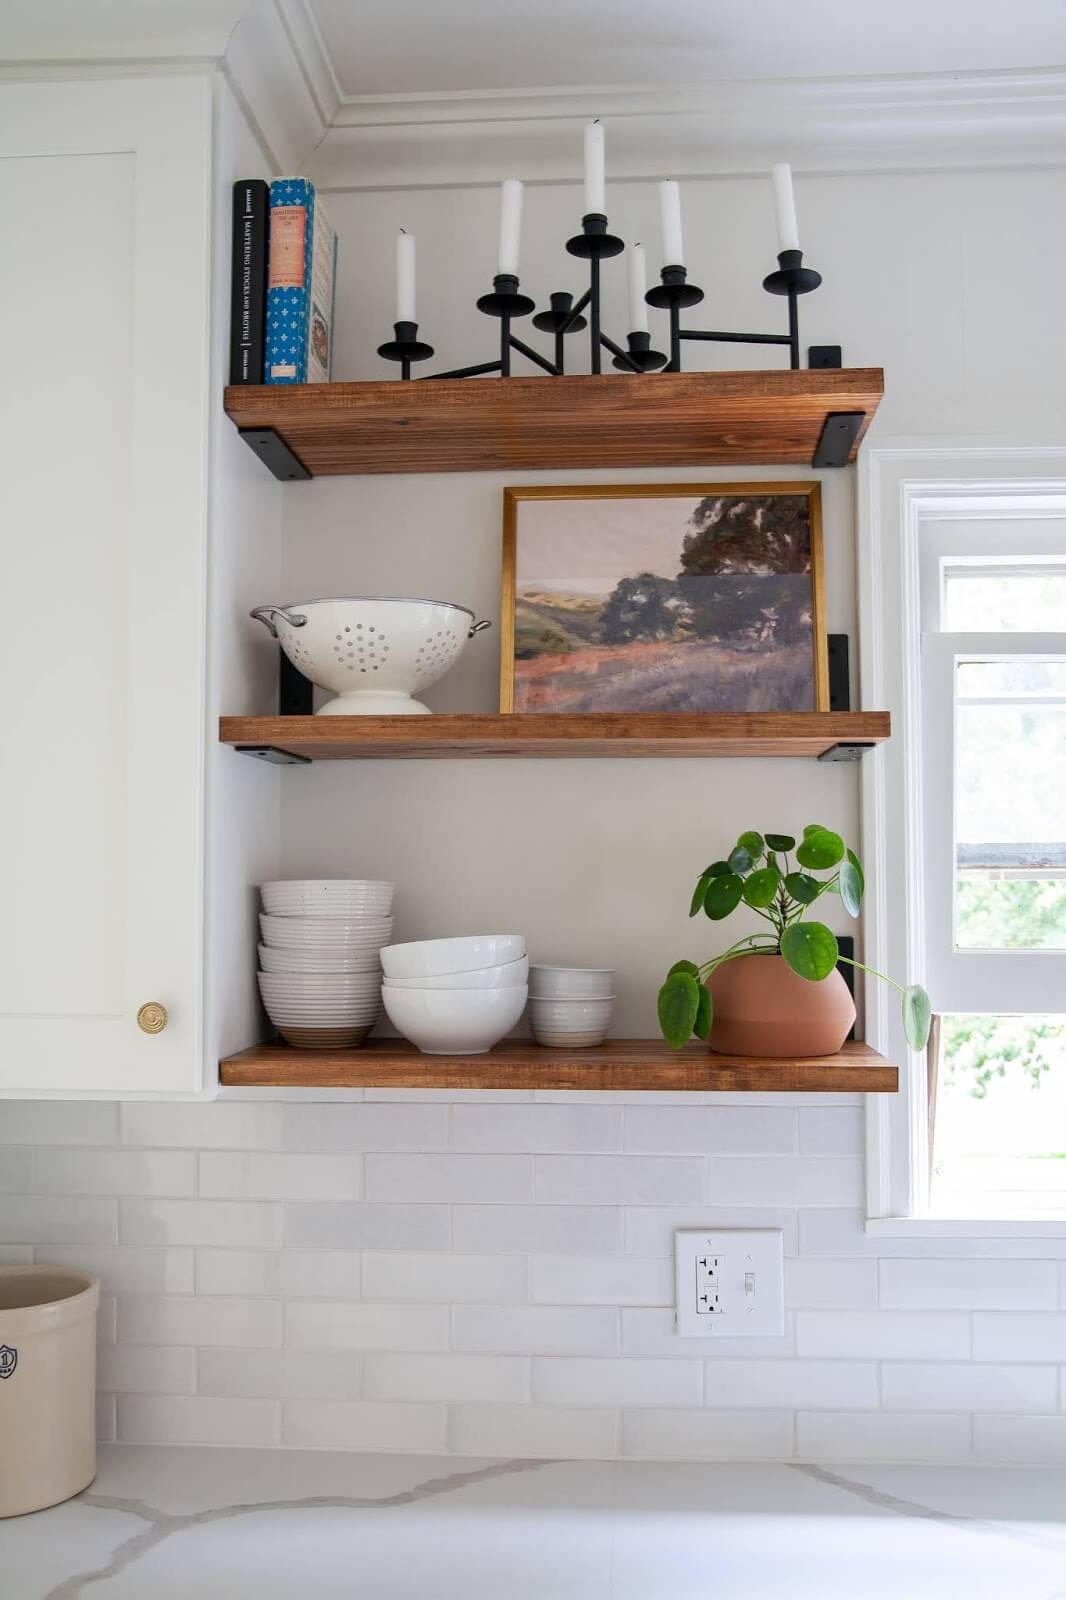 Three Cheers for Tiered Shelving